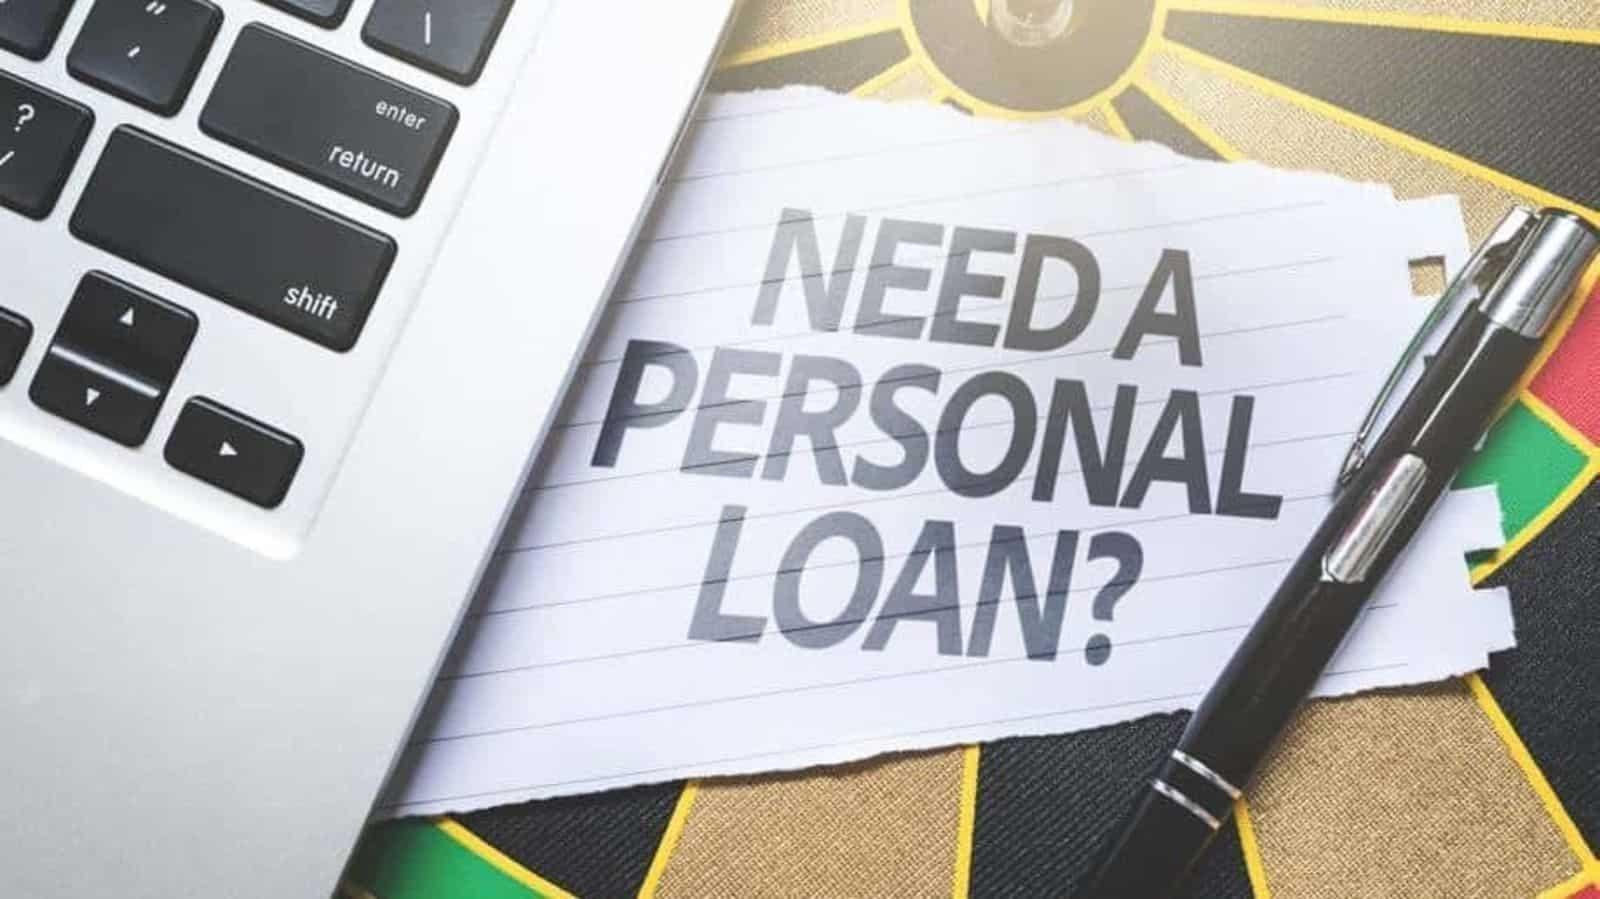 What a personal loan costs you